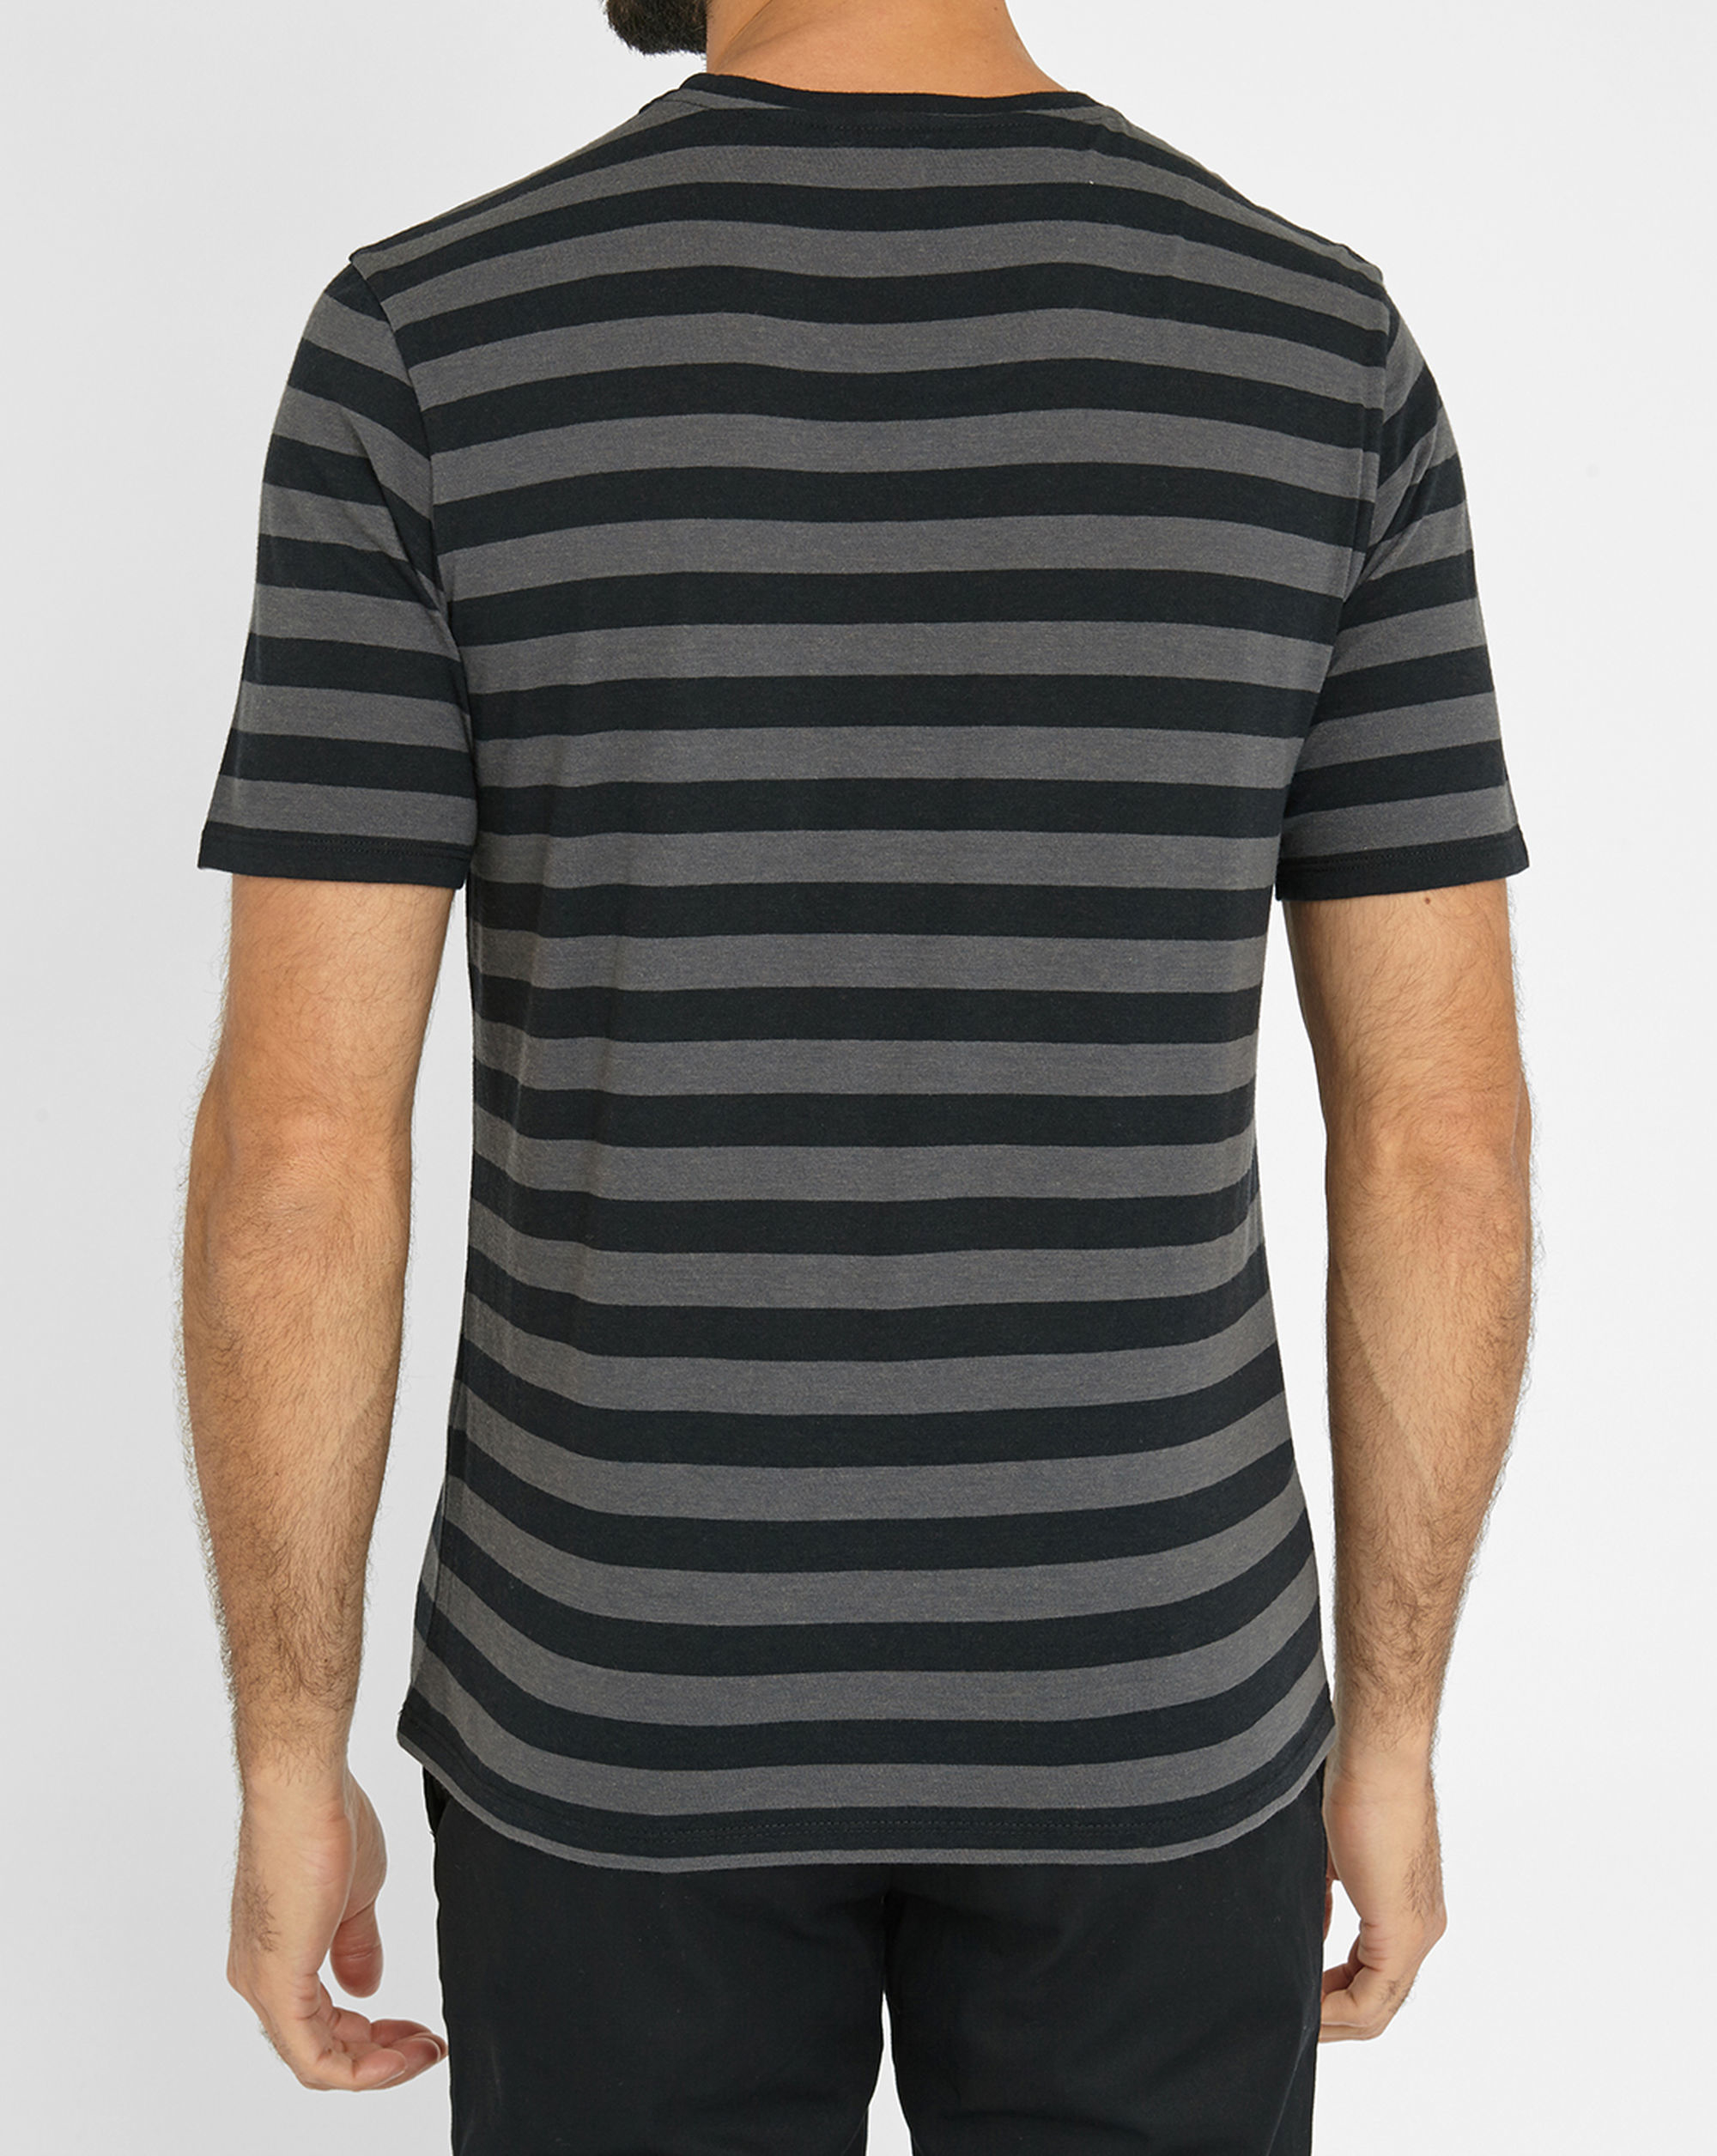 The kooples black grey striped round neck t shirt with Grey striped t shirt